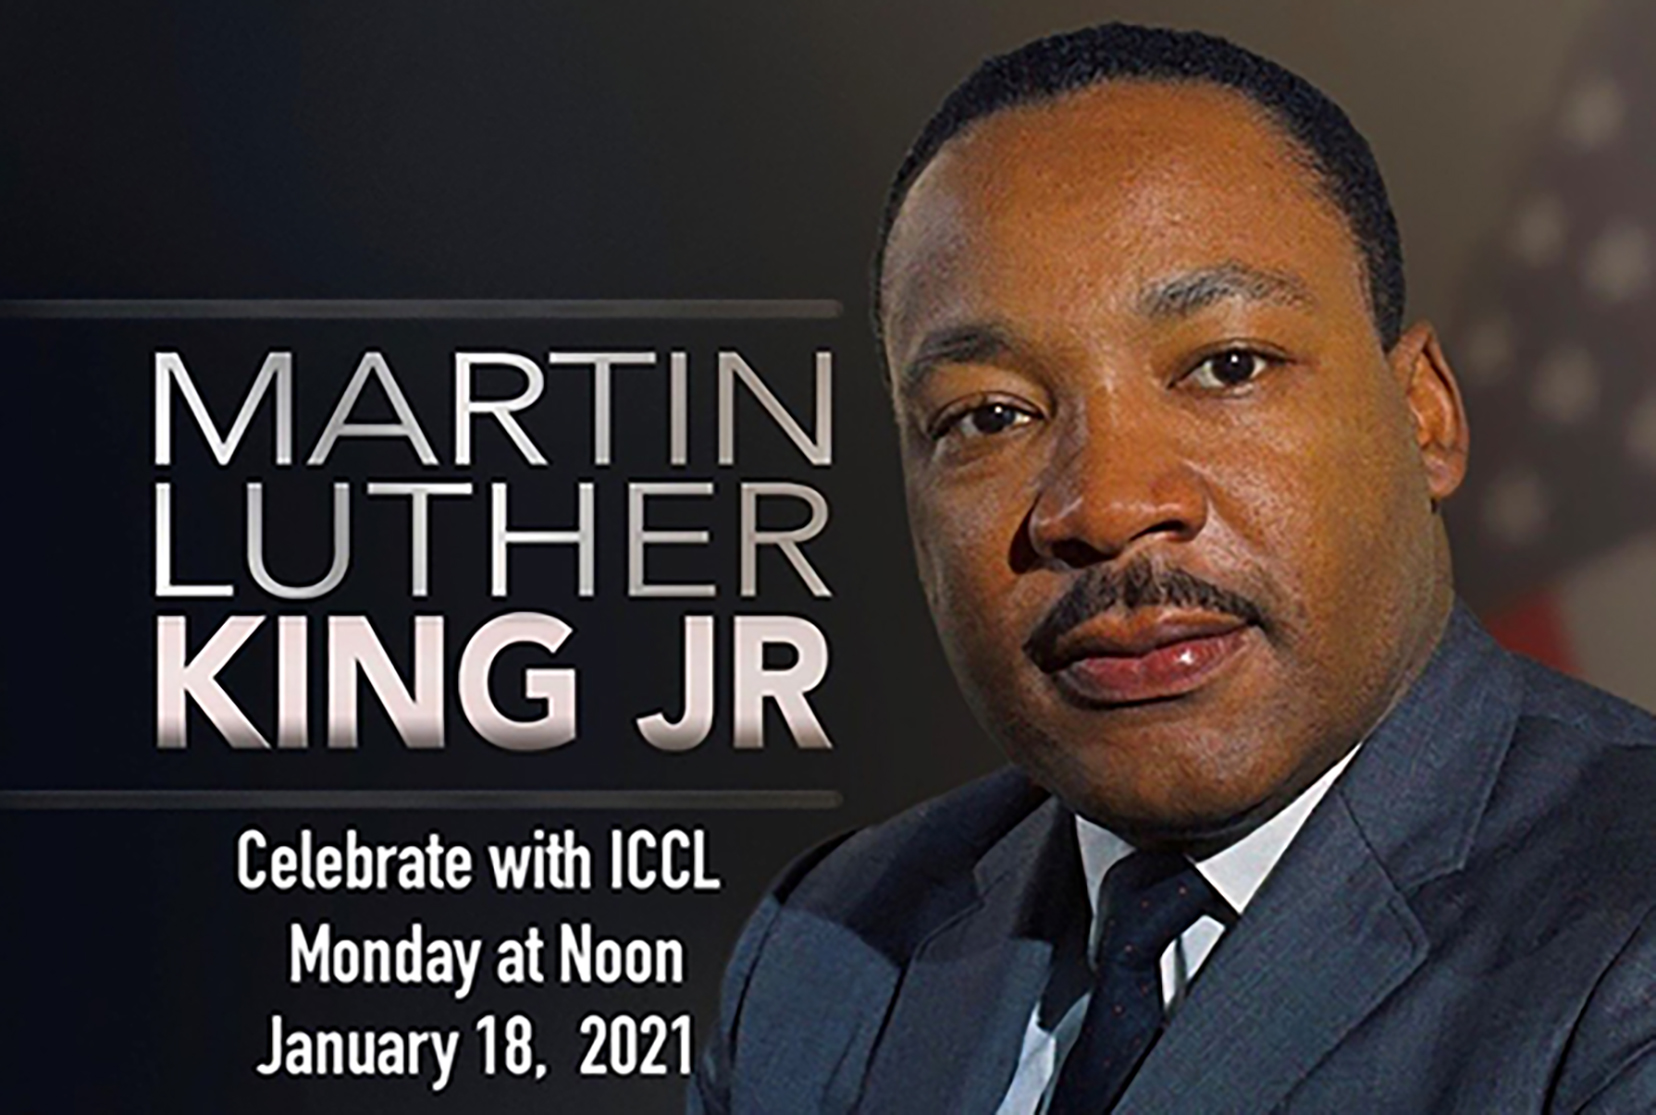 This year's Martin Luther King National Holiday Program, normally held on campus as a collaboration between the University and the Inner City Cultural League of Dover, will be presented as a virtual program by the ICCL at noon on Monday, Jan. 18.